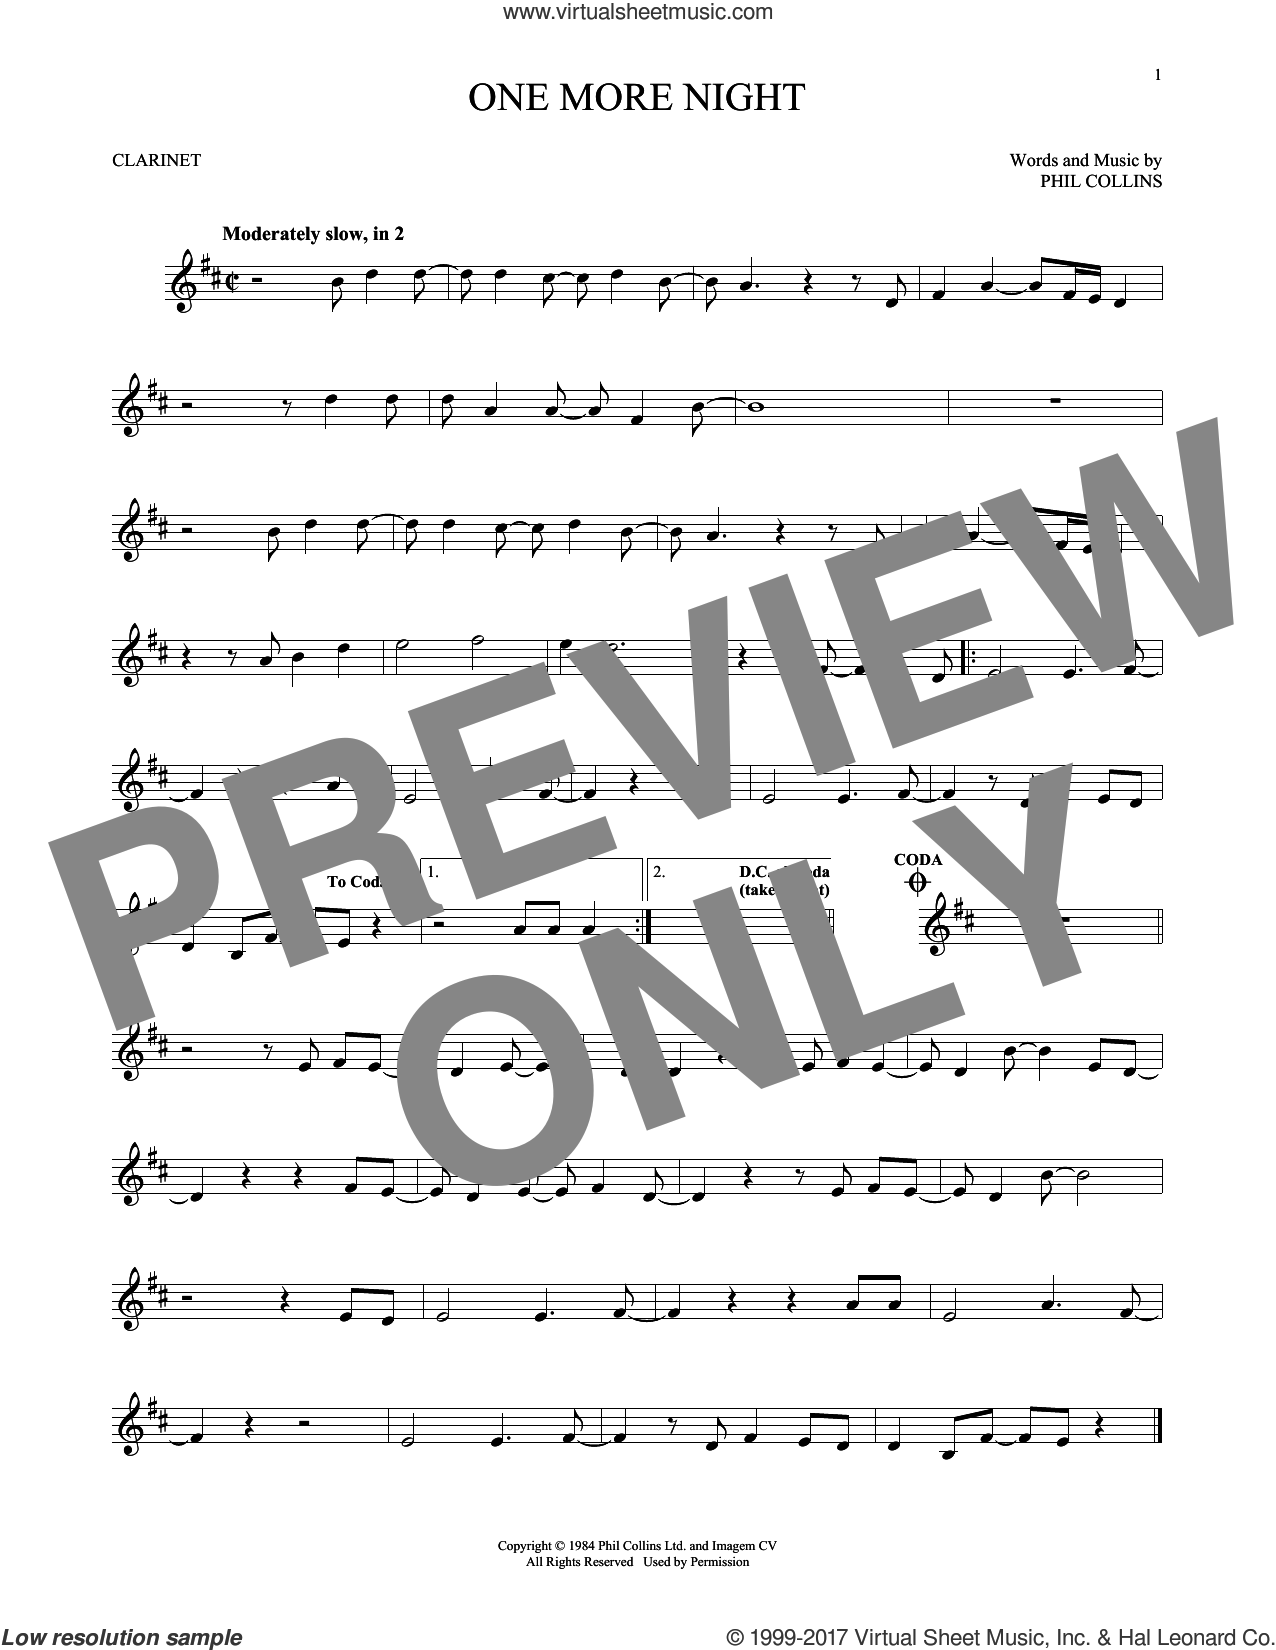 One More Night sheet music for clarinet solo by Phil Collins, intermediate skill level